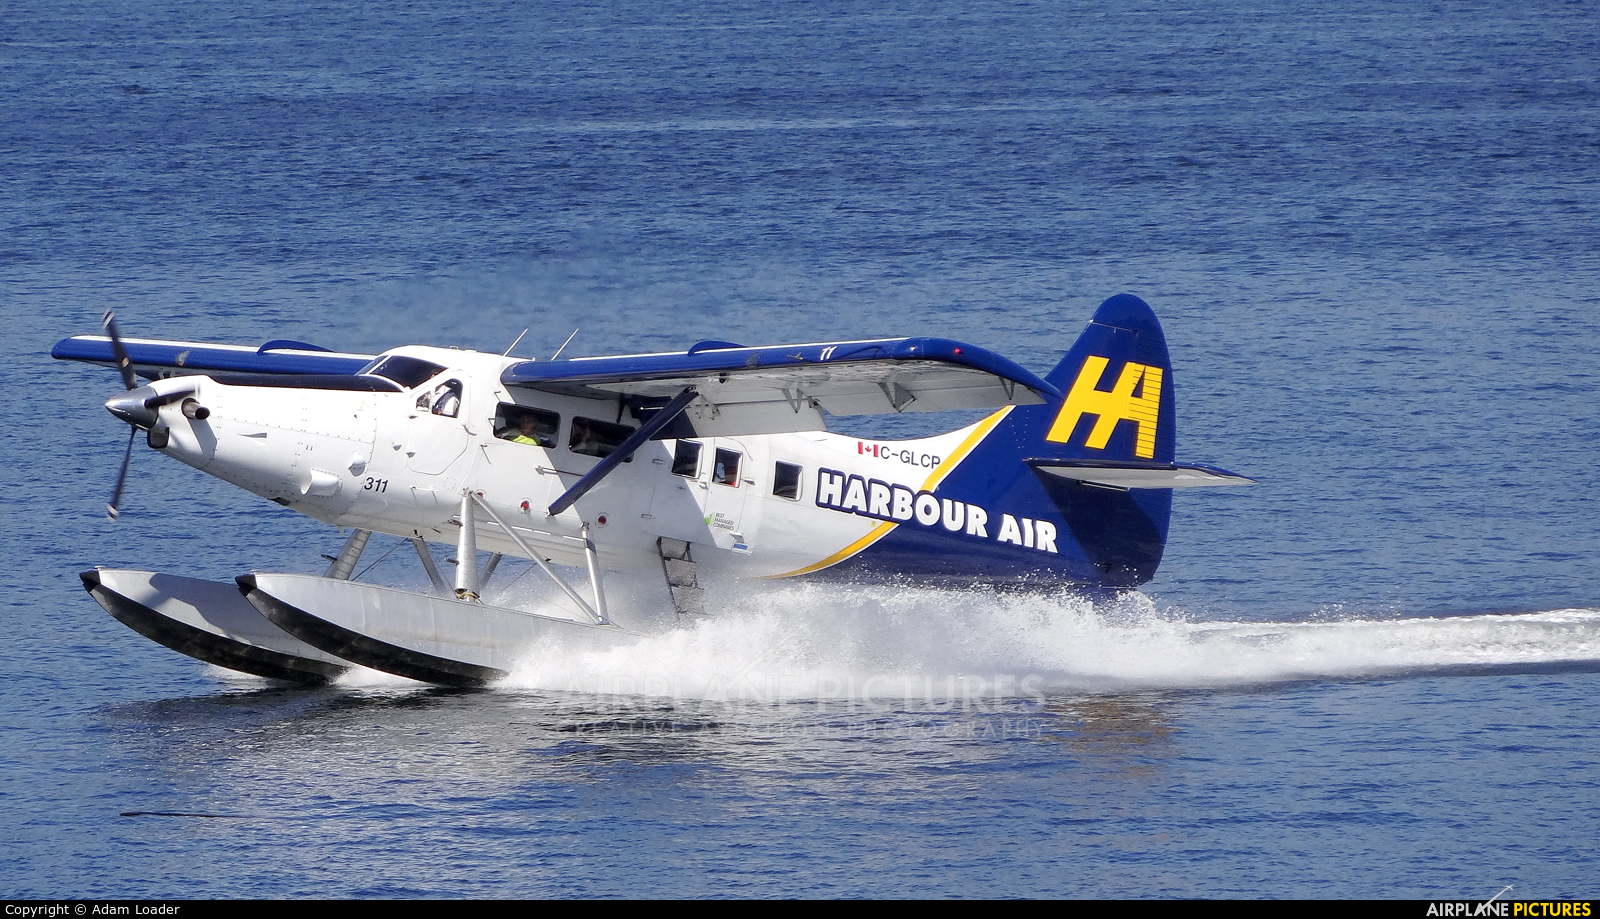 Harbour Air C-GLCP aircraft at Vancouver Coal Harbour, BC